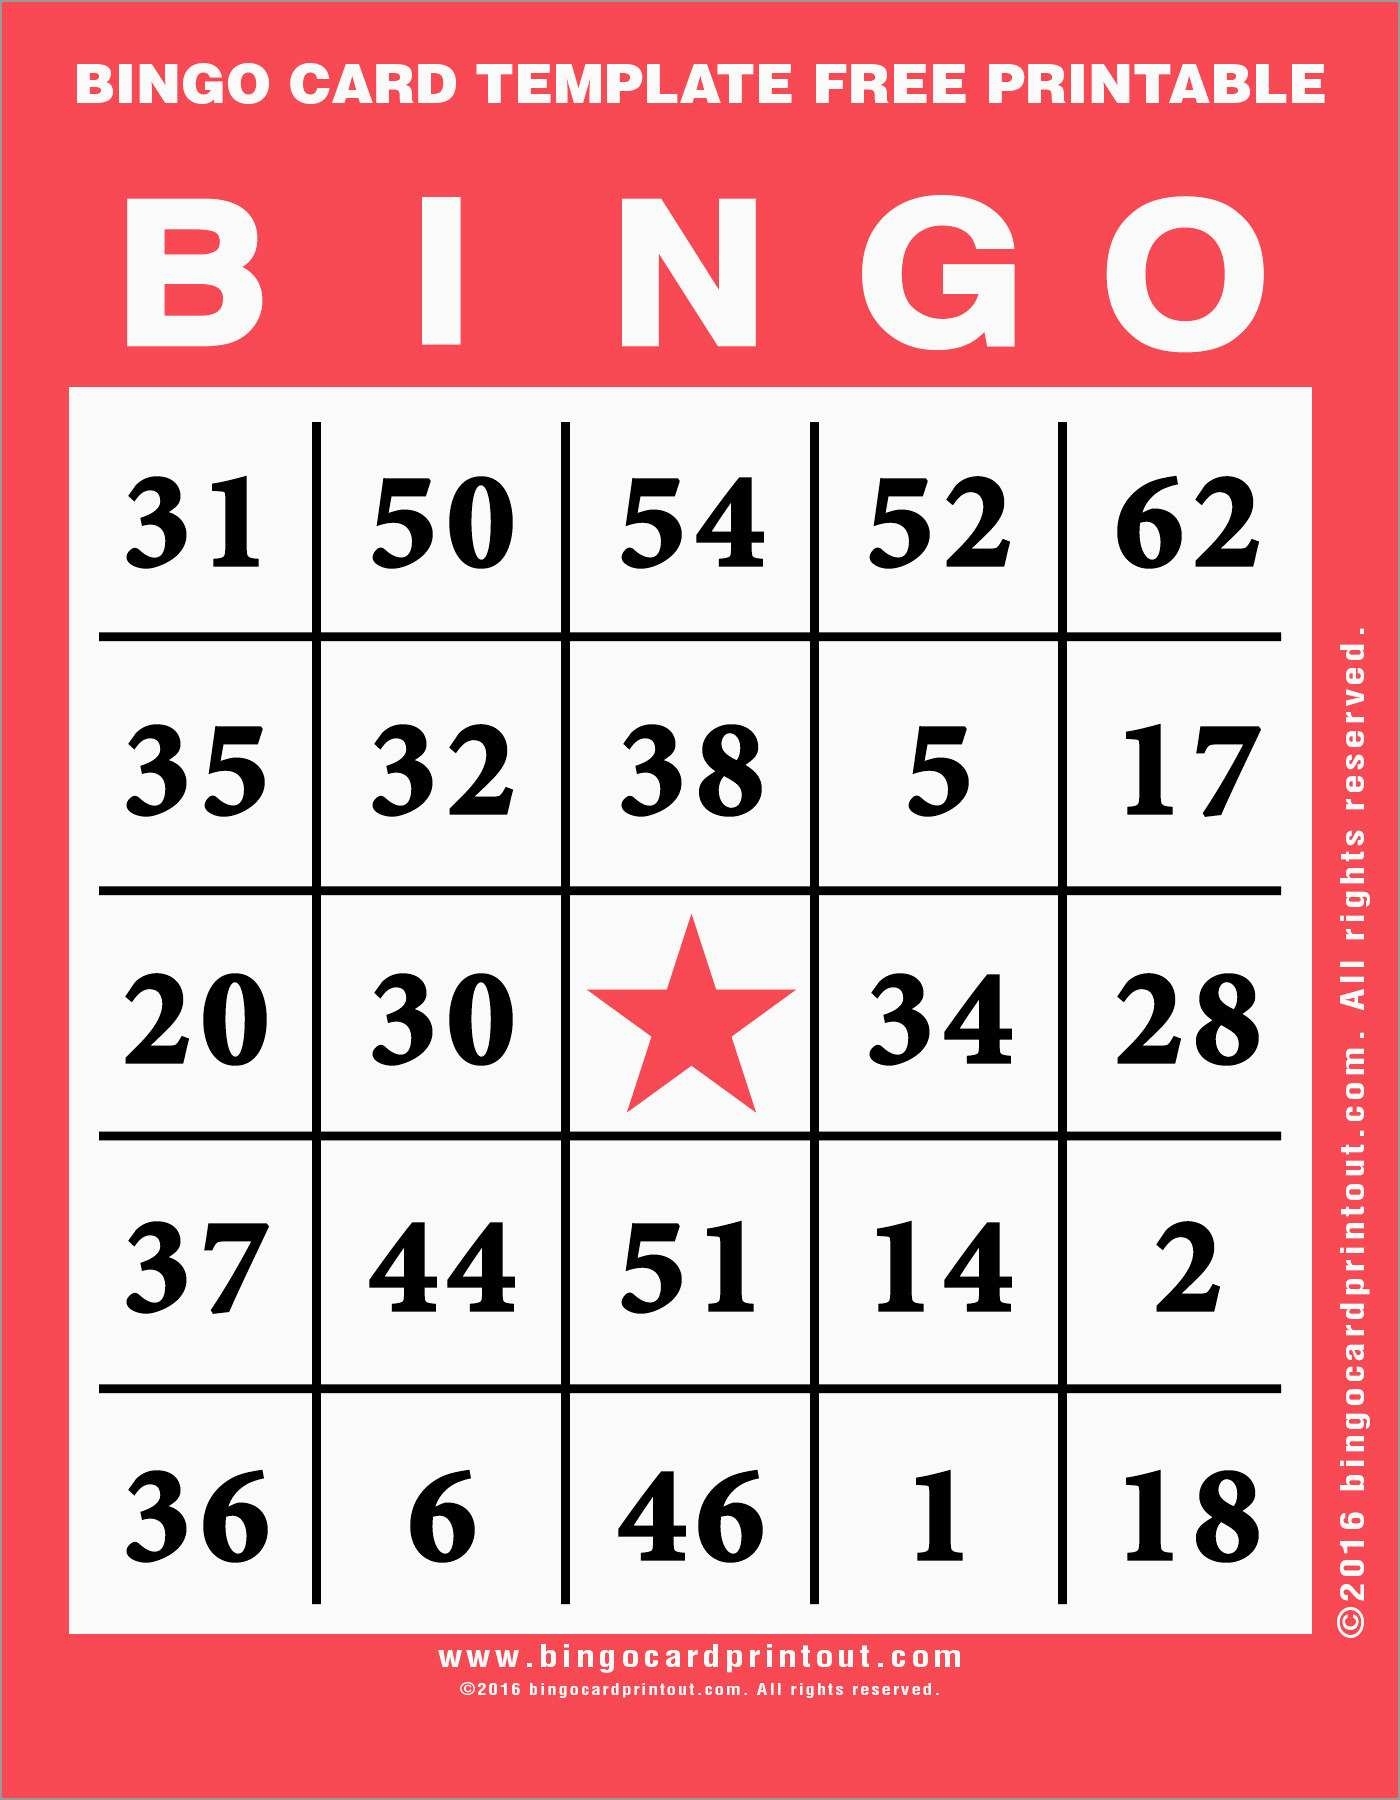 Luxury Bingo Card Template Free | Best Of Template - Free Printable Bingo Cards 1 75